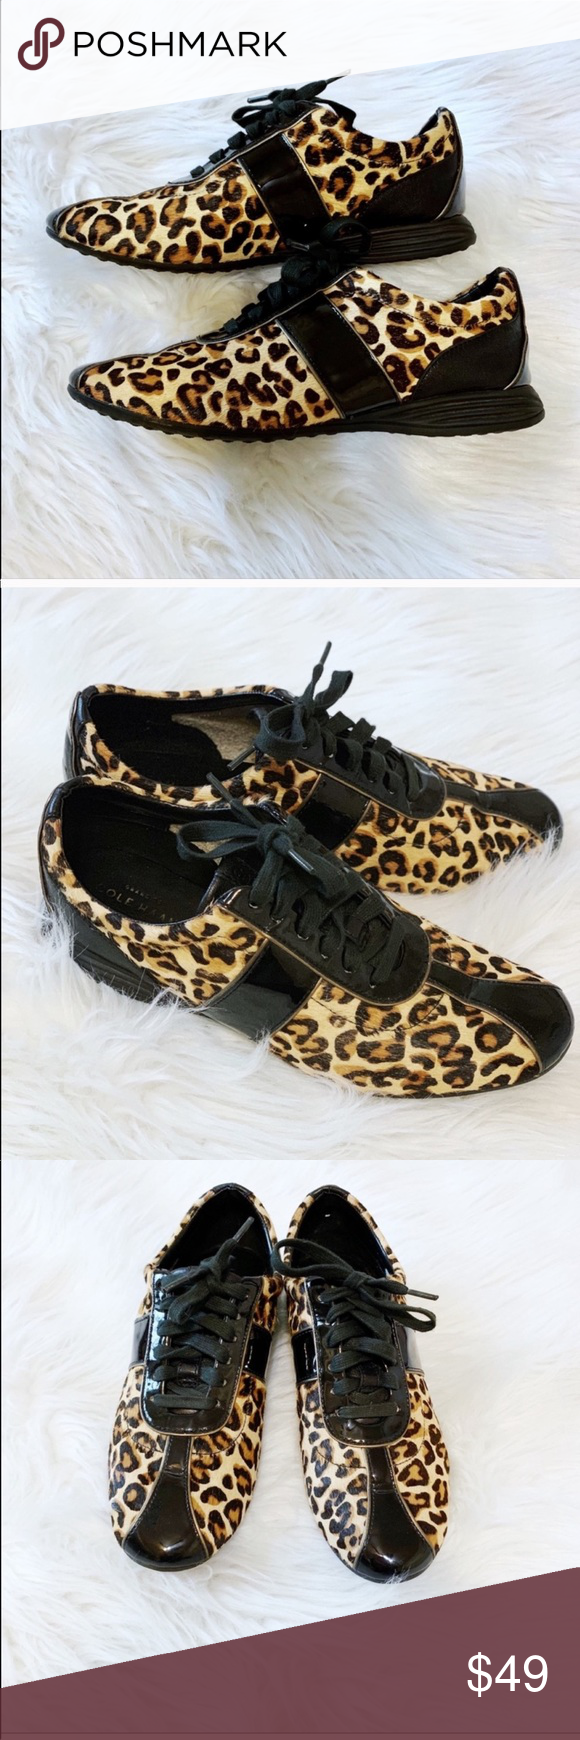 """Cole Haan Leopard Shoes Size 7 1/2"""" B Cole Haan Leopard Shoes Size 7 1/2"""" B Used but in good condition.  These shoes are super comfy and so cute!  No flaws other than some slight wear on the inside, and bottoms. See all pictures for exact condition of shoes. Cole Haan Shoes Sneakers #leopardshoesoutfit"""